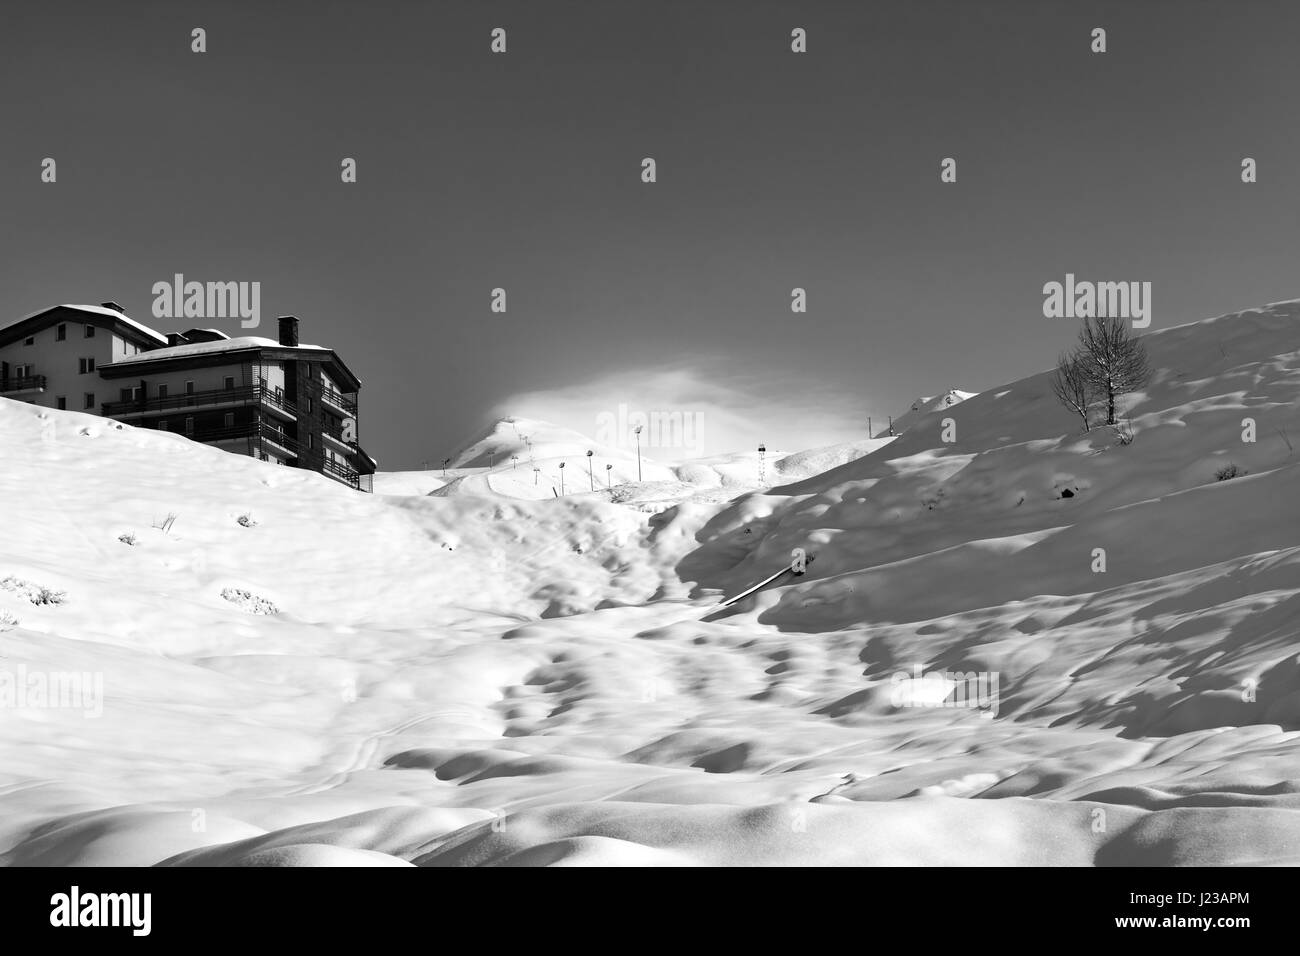 Black and white view on off-piste slope and hotel in winter mountains. Caucasus Mountains, Georgia, region Gudauri. - Stock Image